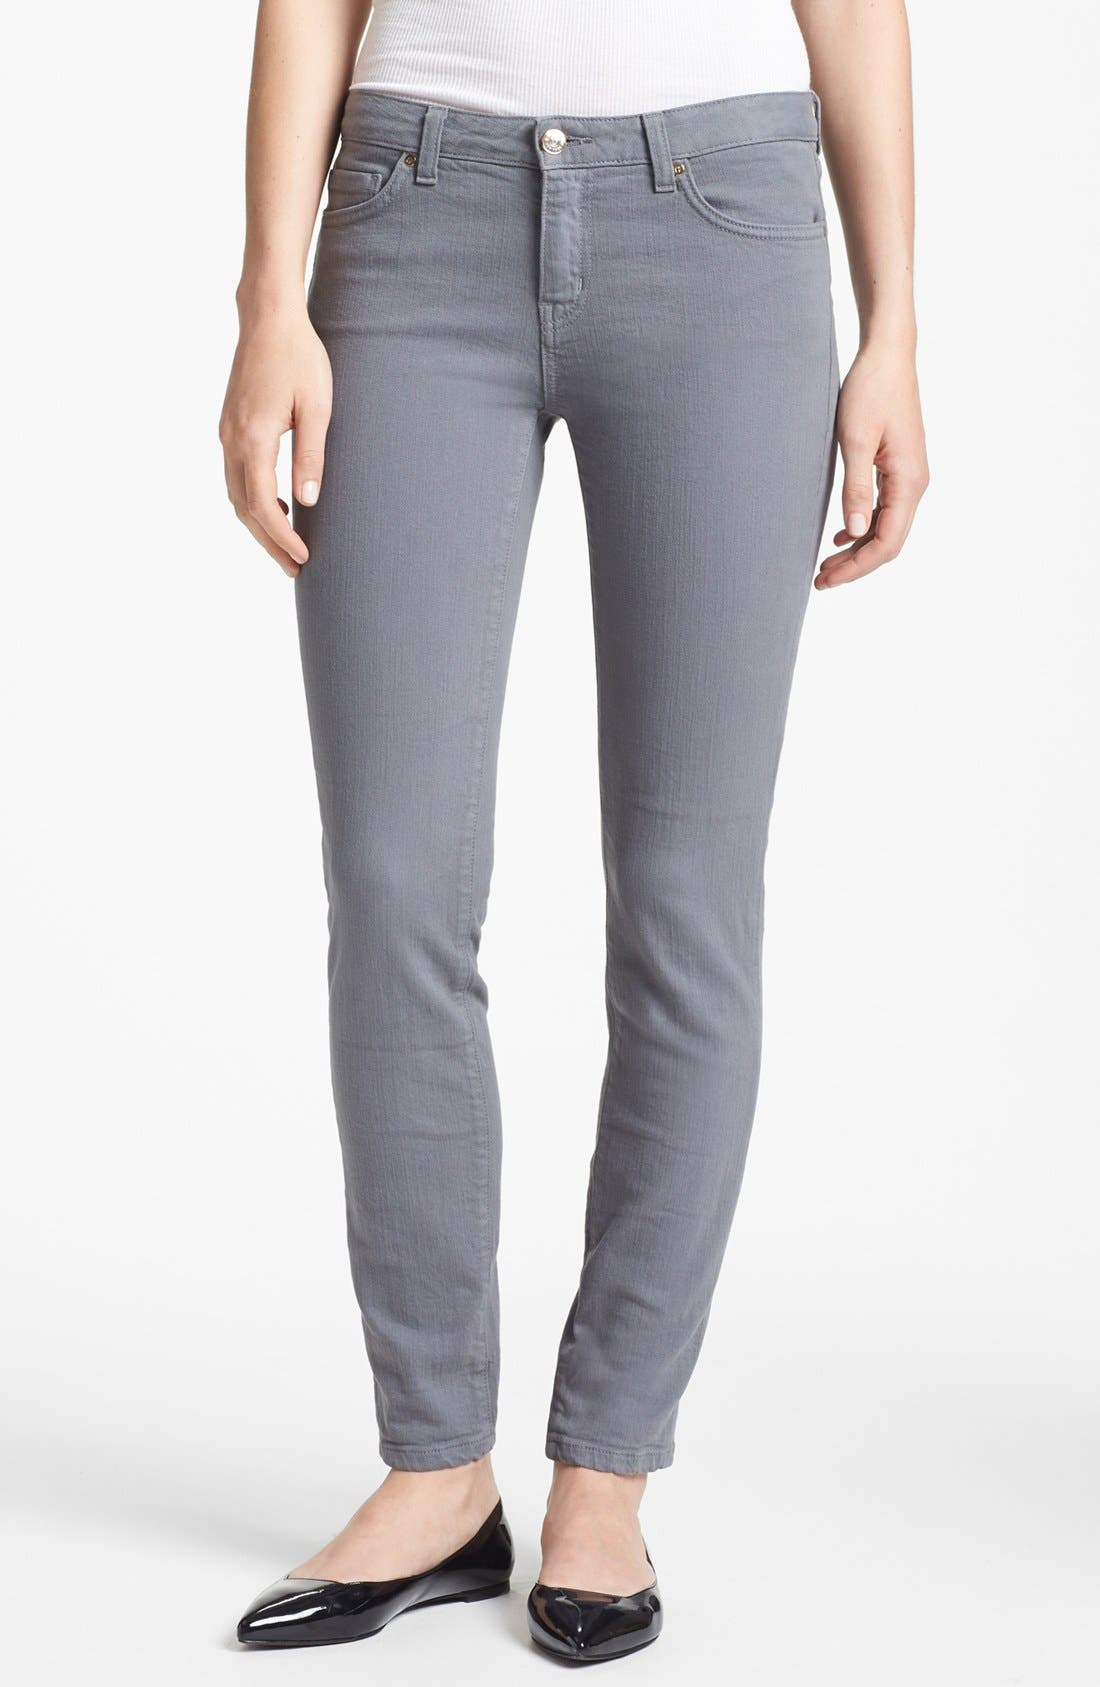 Main Image - kate spade new york 'broome street' overdyed skinny jeans (Medium Grey)